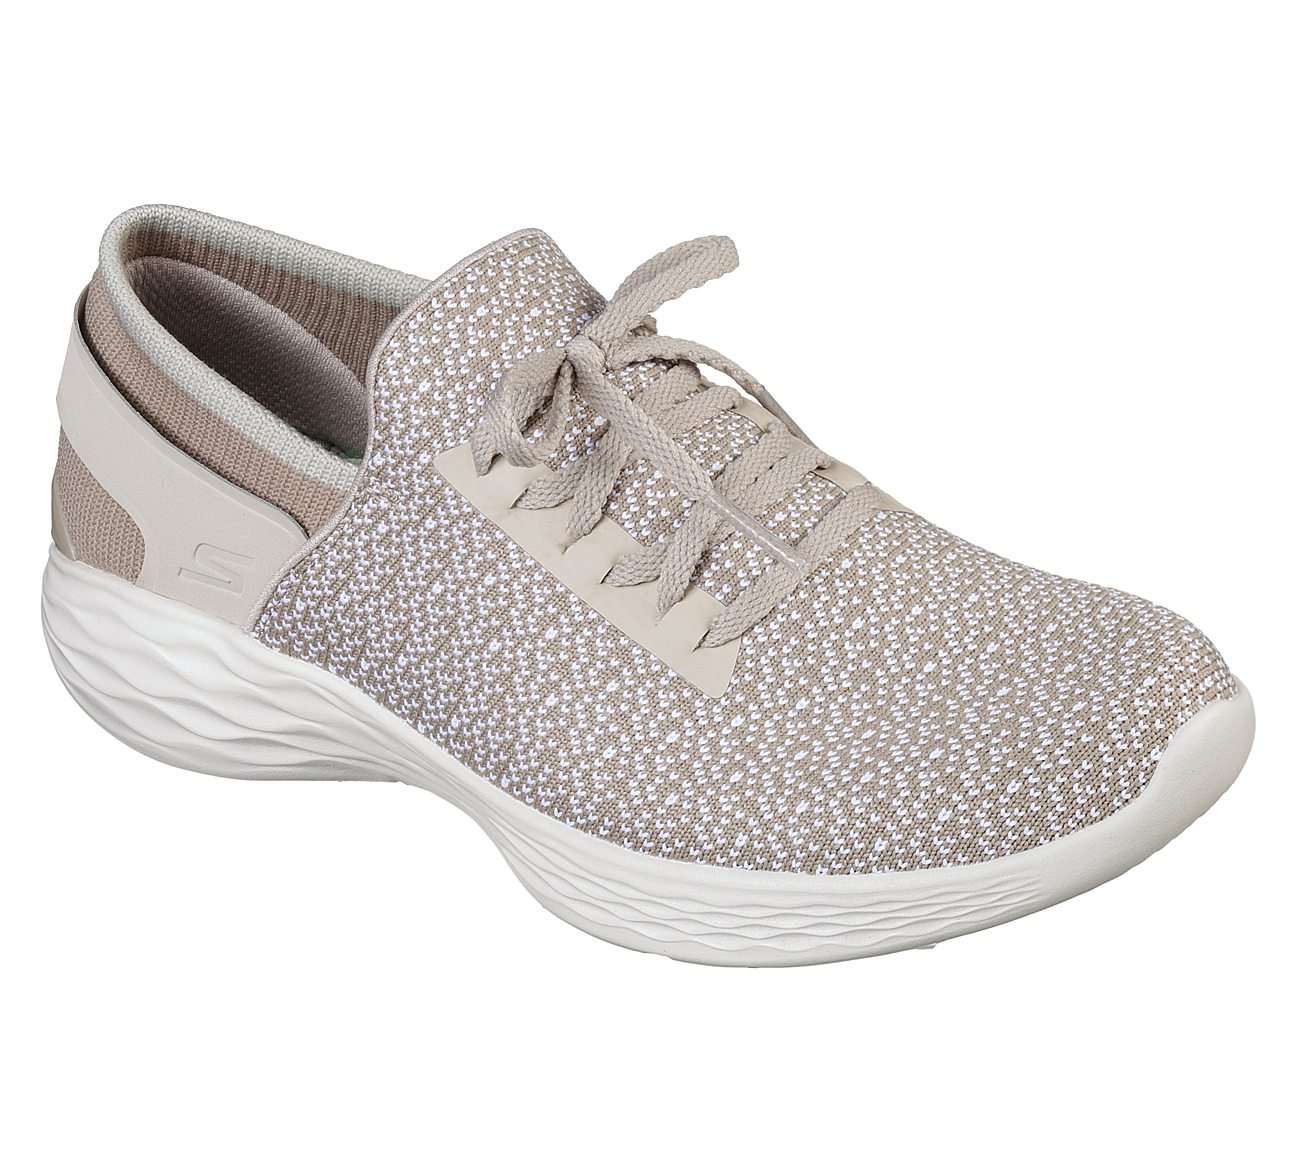 70dd1e23097 Buy SKECHERS YOU - Inspire YOU by skechers Shoes only  70.00